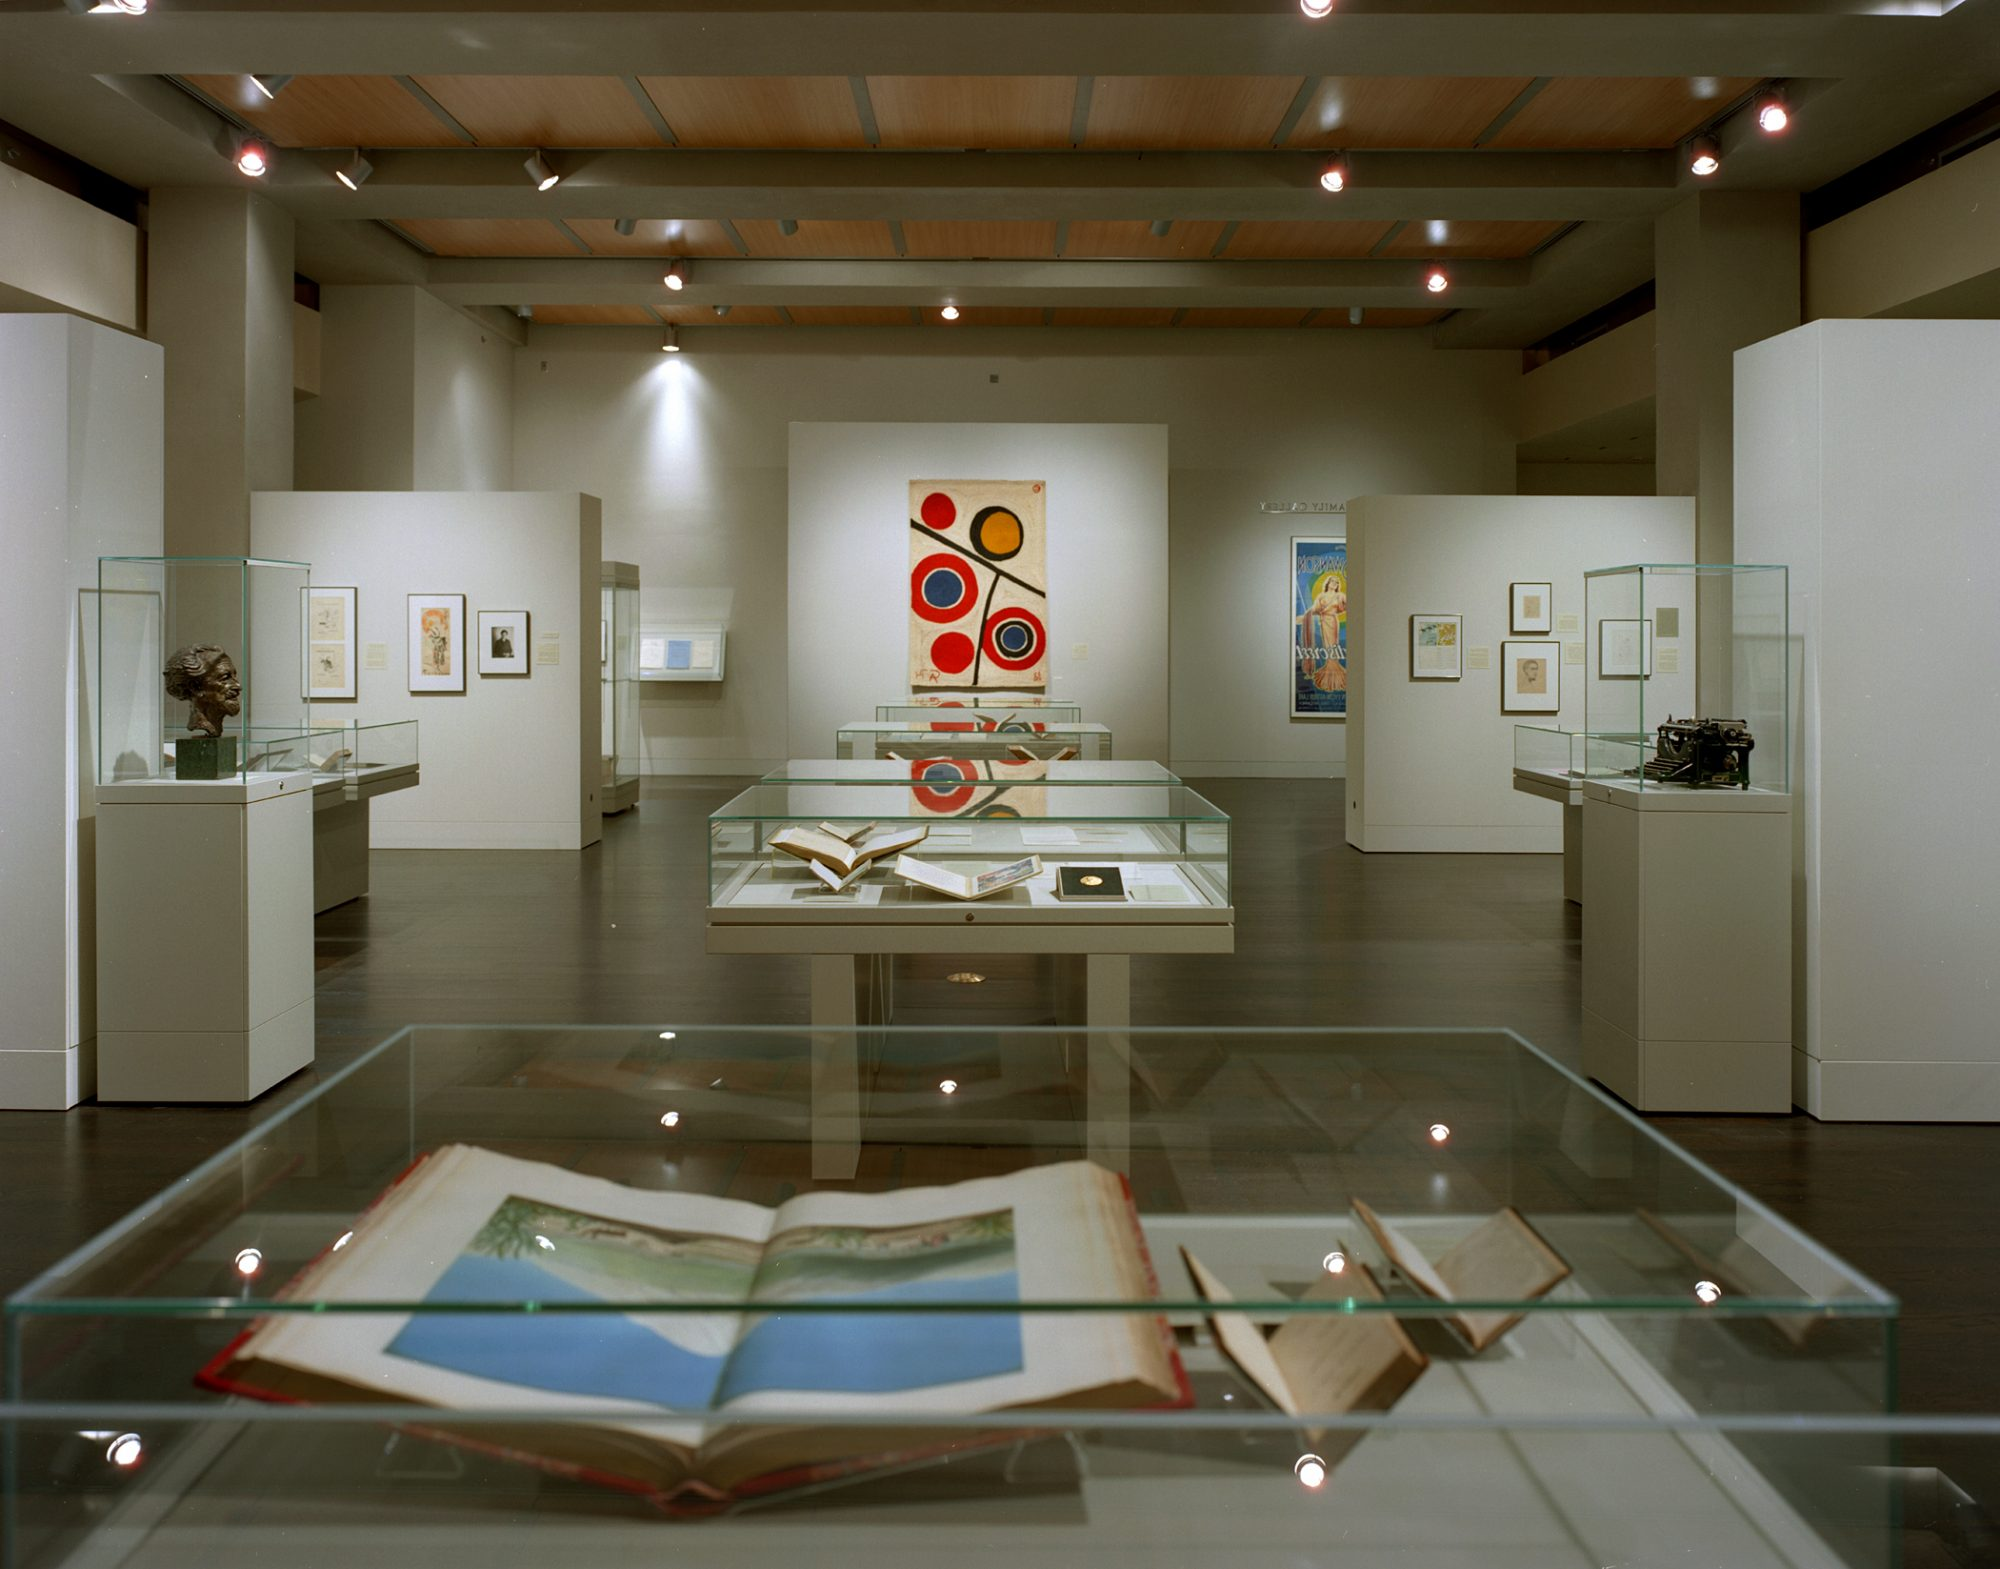 Harry Ransom Center (Austin, Texas)